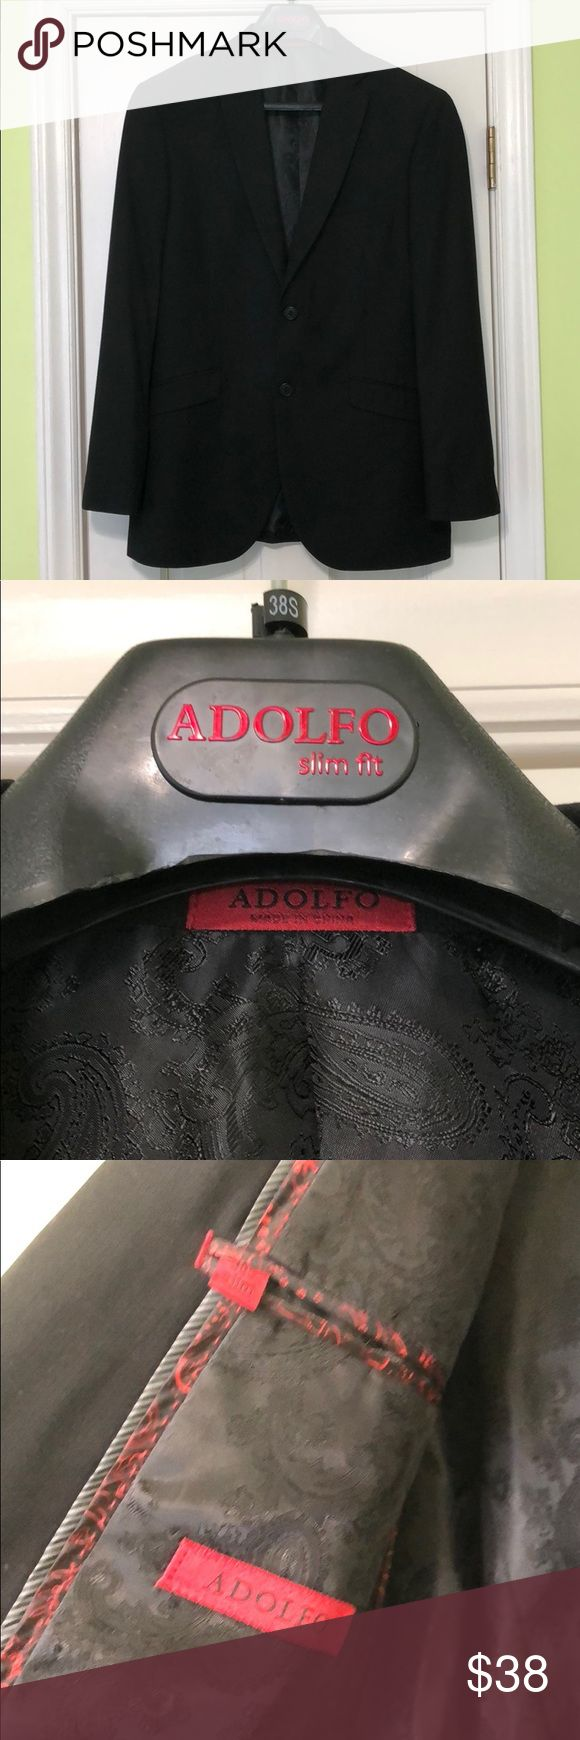 Adolfo Suit Jacket Like New/ worn once / Black Suit Separate 2 button Jacket / breat pockets / fully lined / slim fit Adolfo Suits & Blazers Sport Coats & Blazers